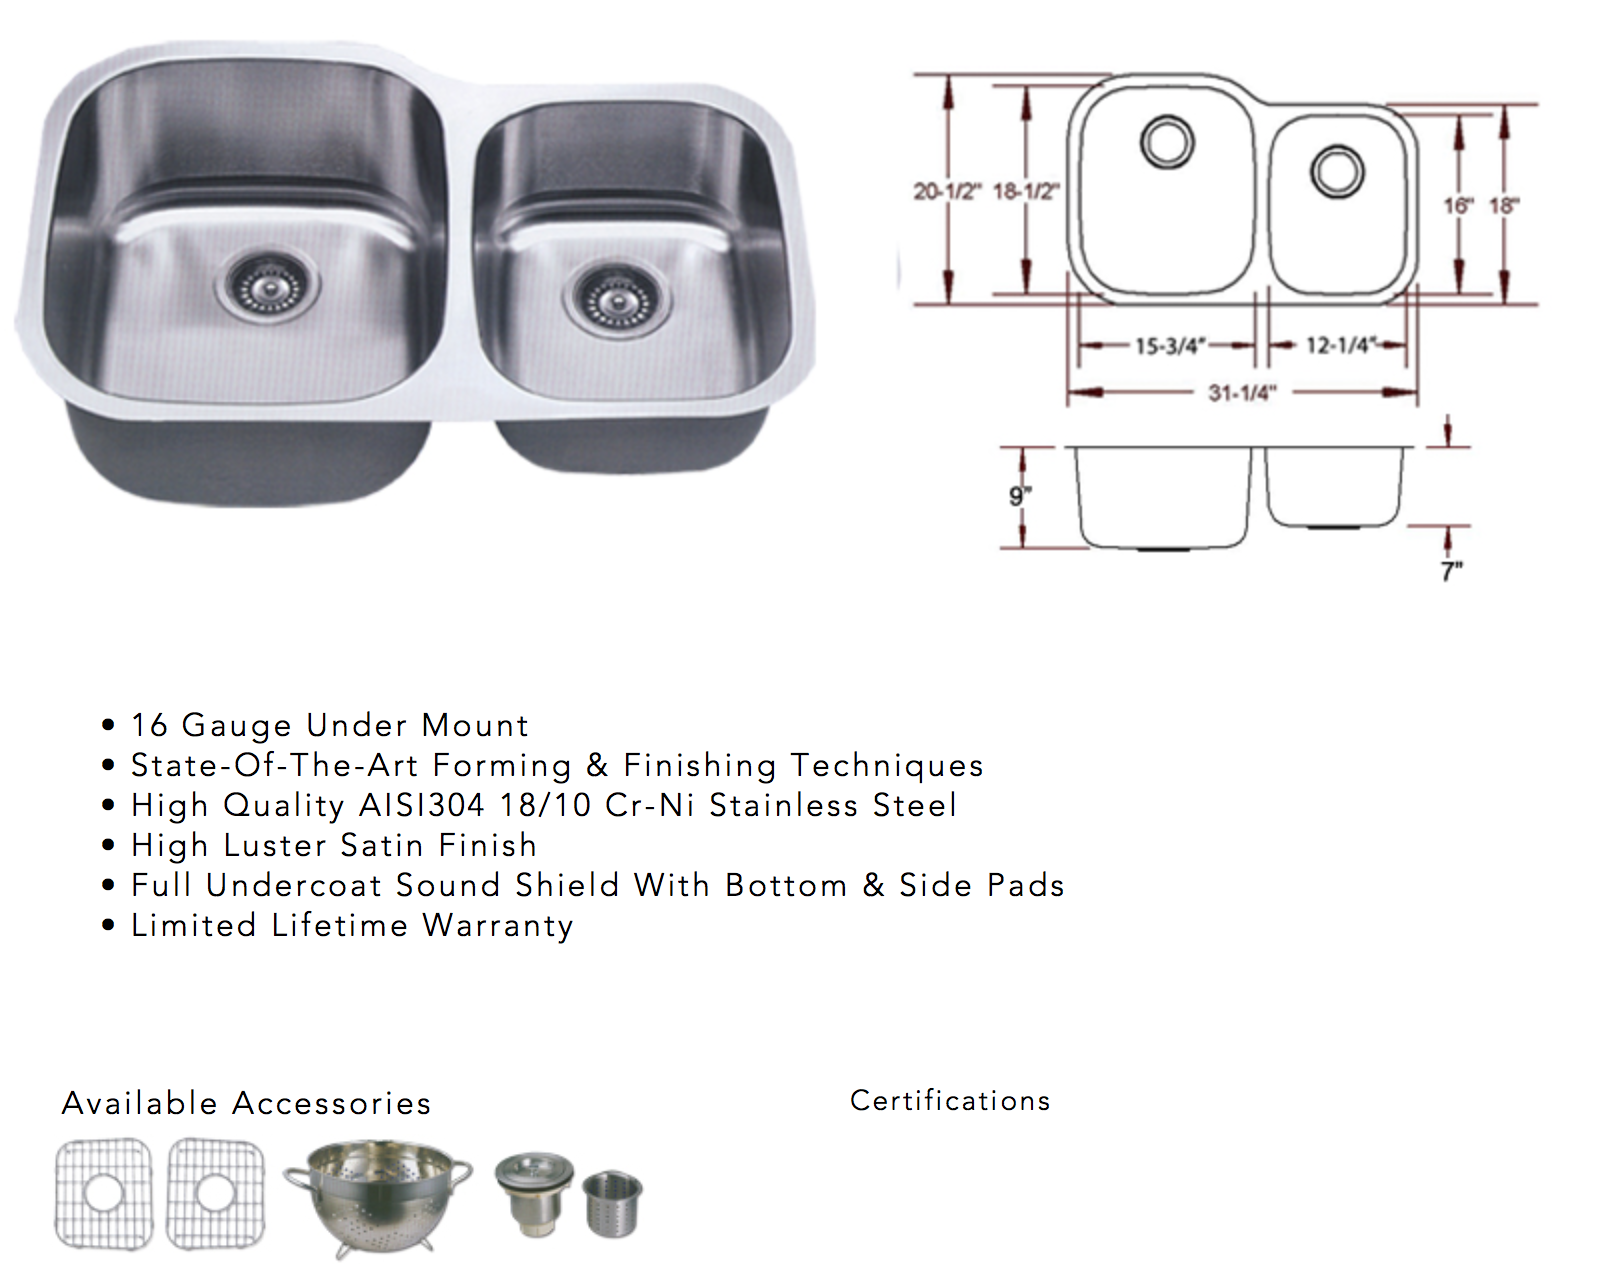 Image containing information for a stainless steel undermount sink